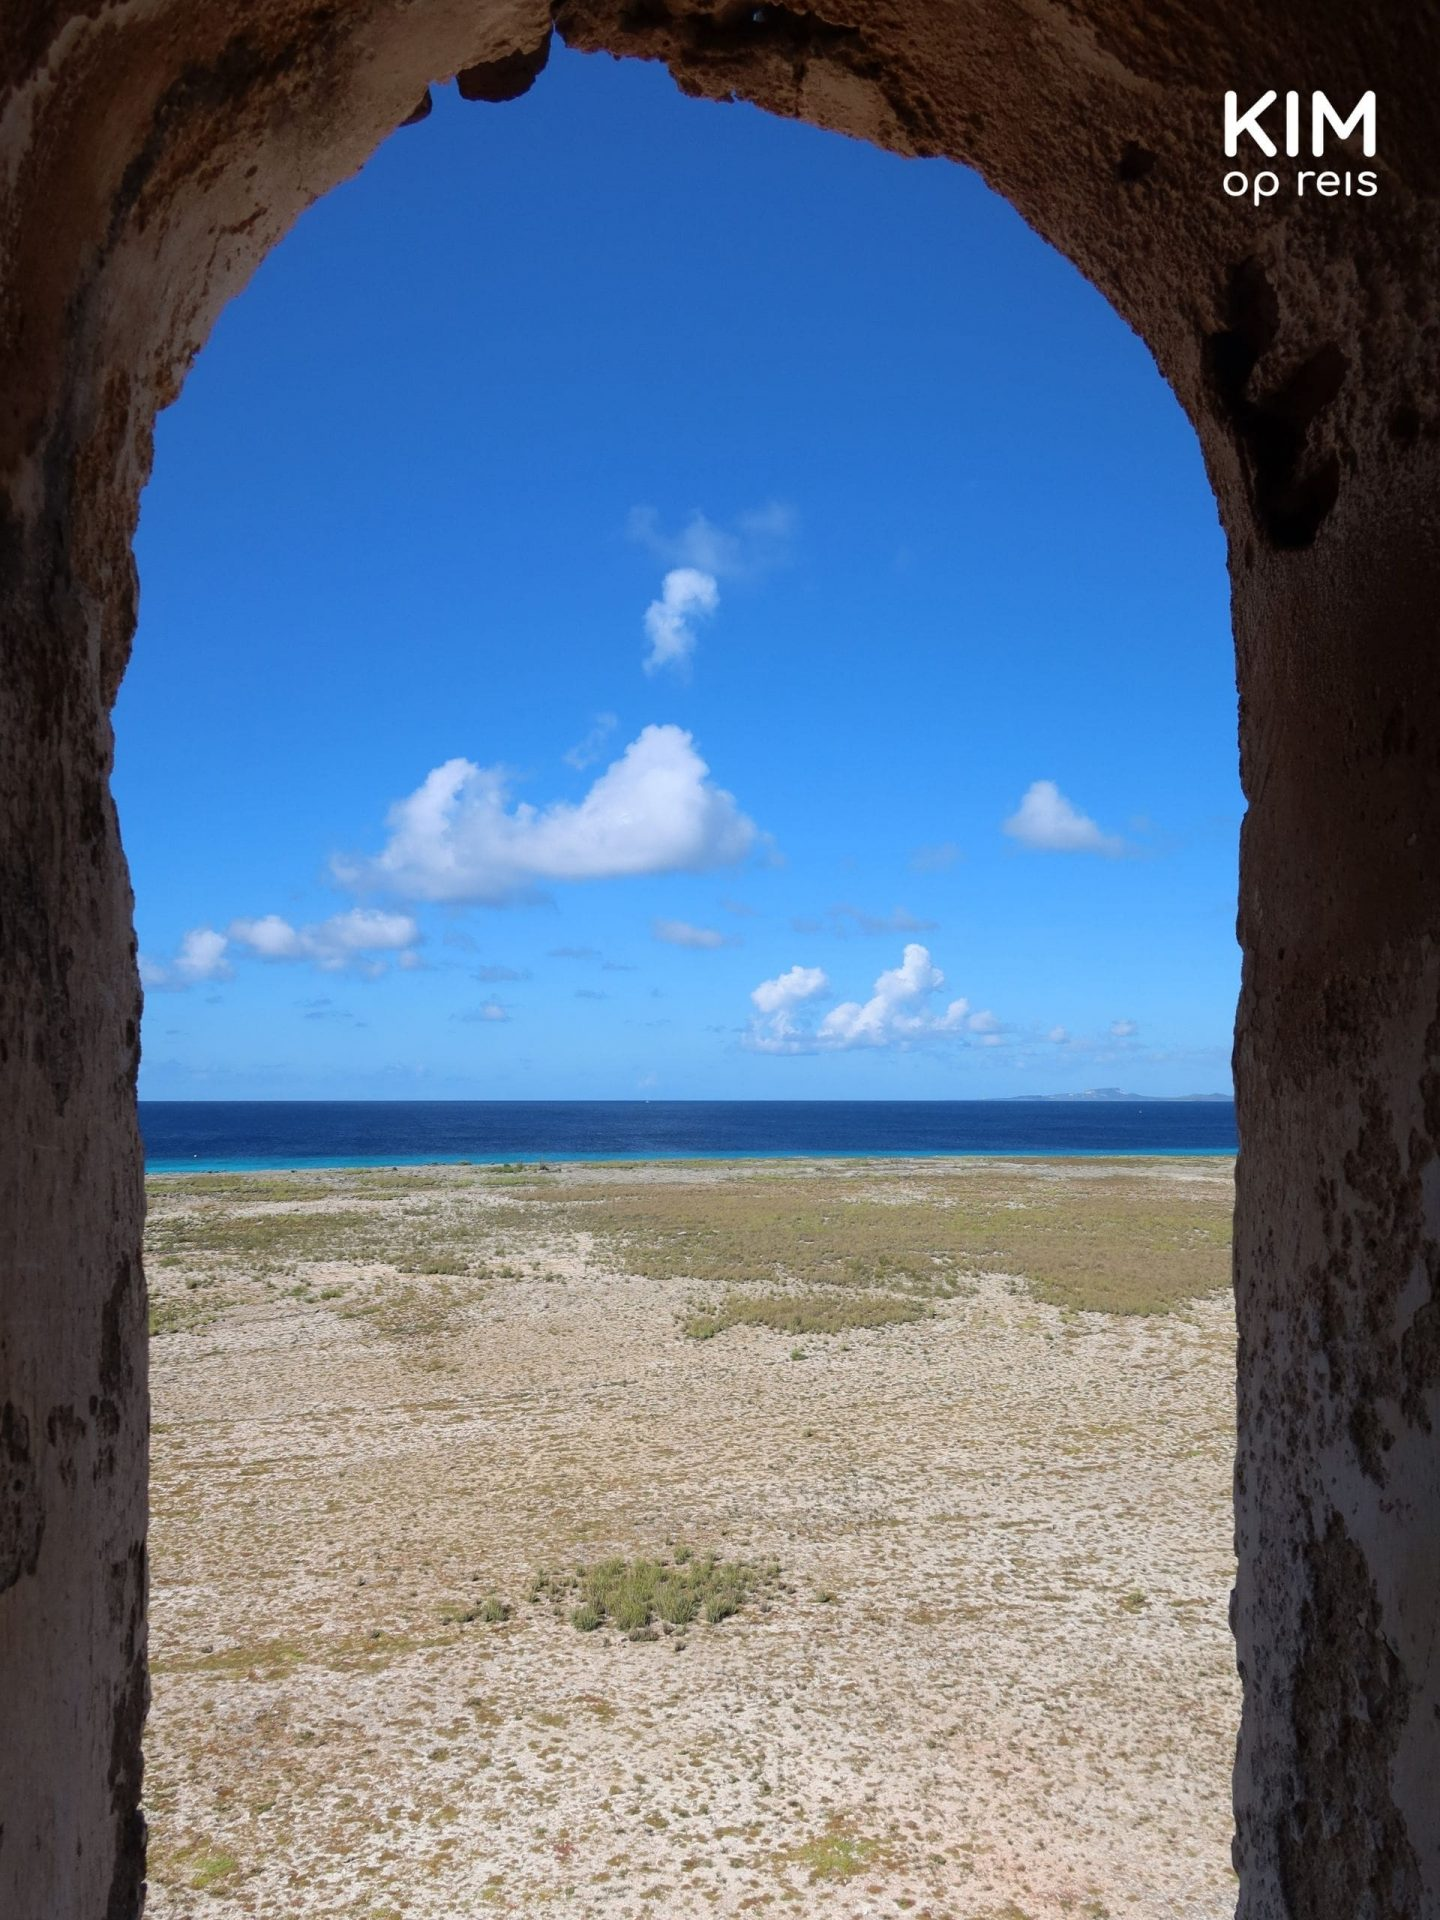 Day trip Klein Curaçao, viewpoint lighthouse: through a lighthouse window a view of a dry landscape with the sea in the distance